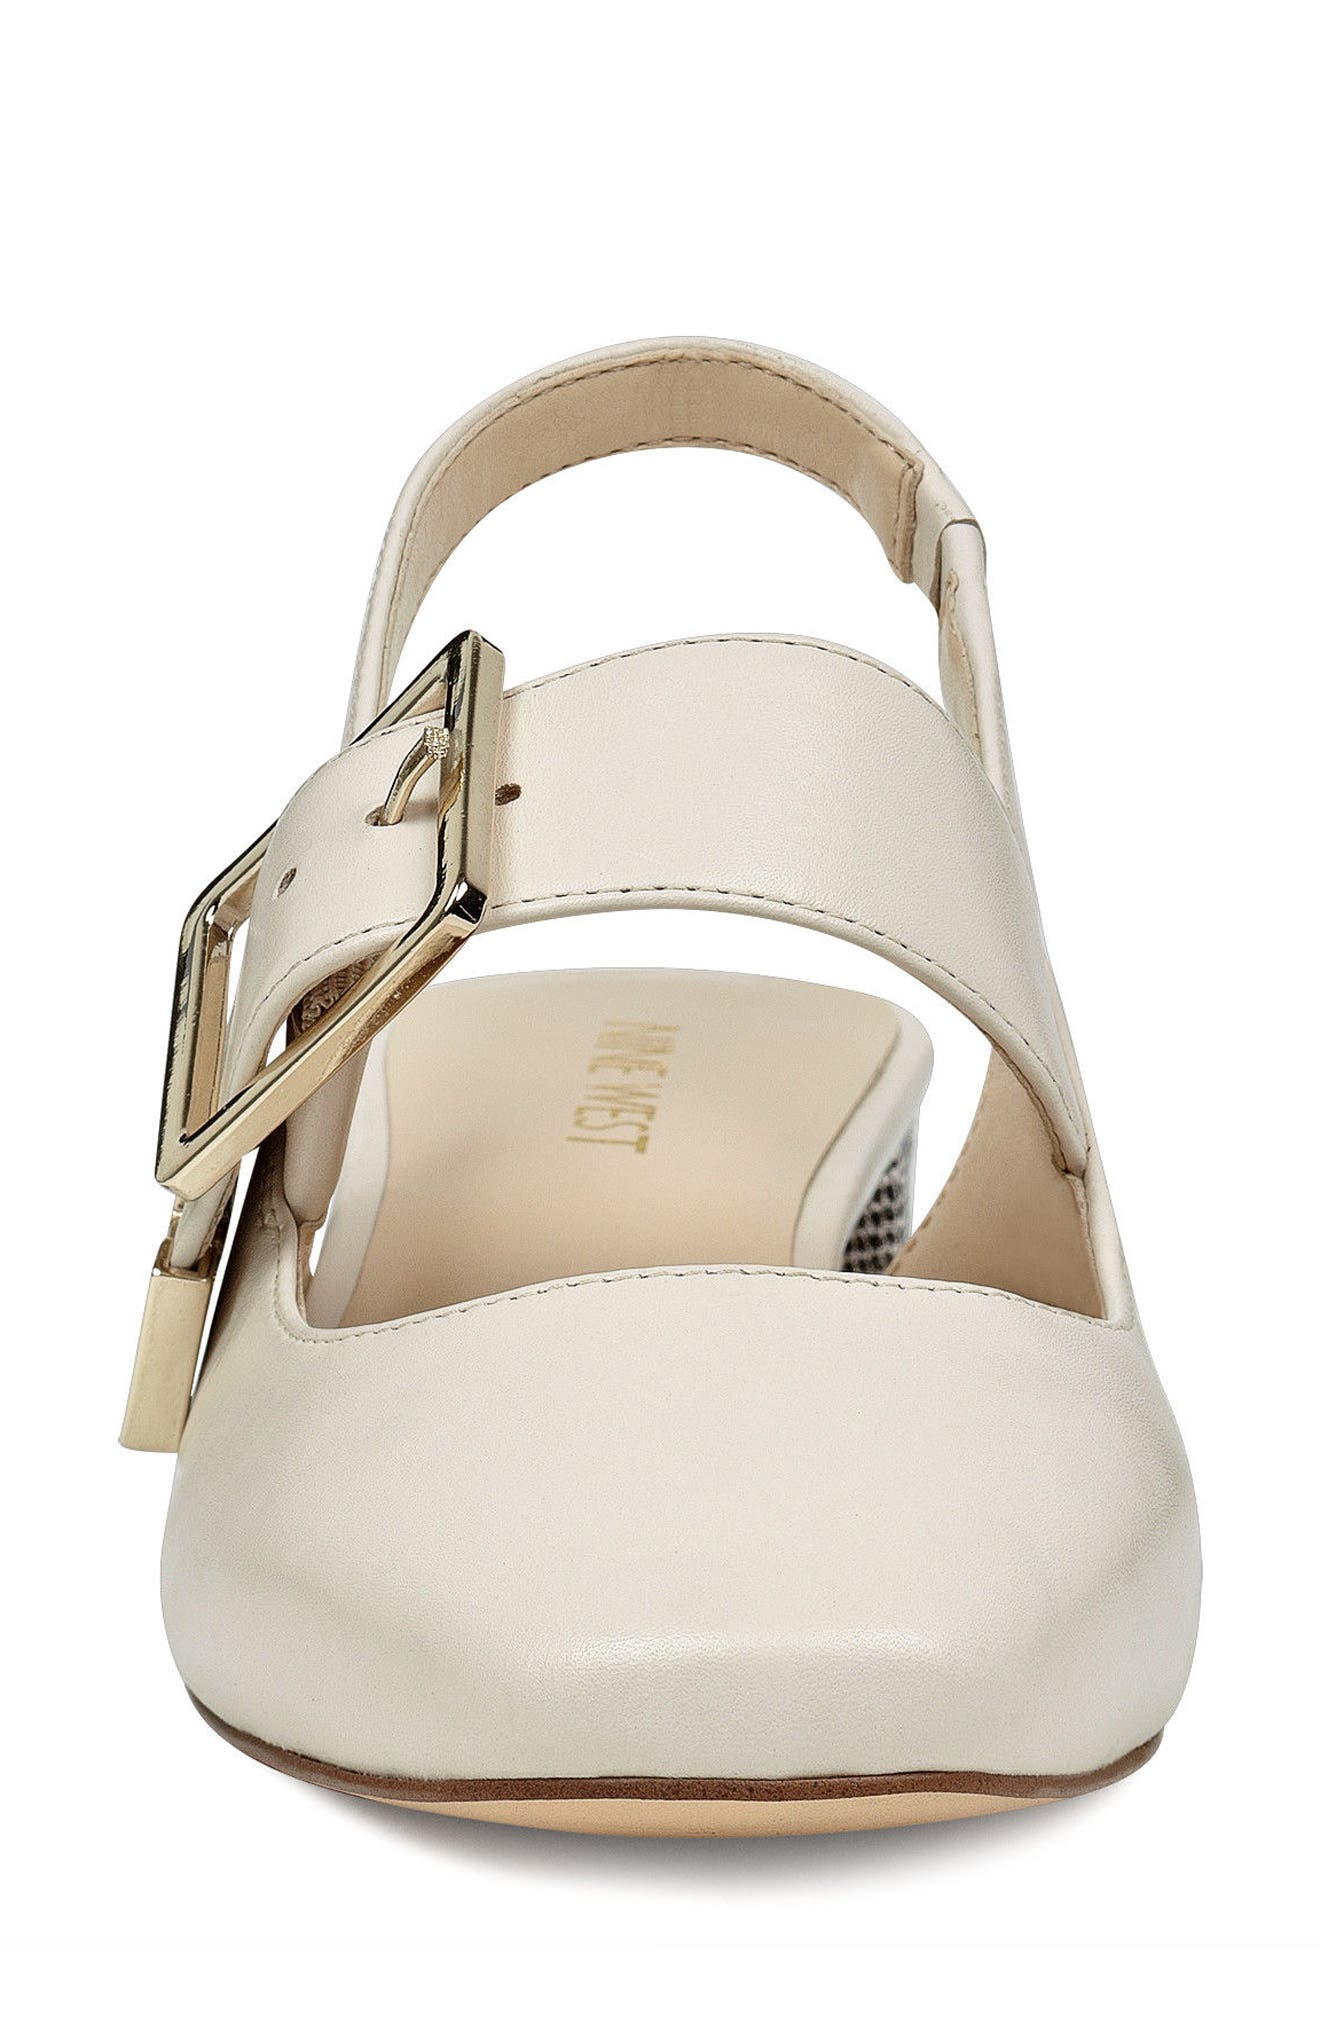 Wendor Slingback Pump,                             Alternate thumbnail 4, color,                             Off White Leather